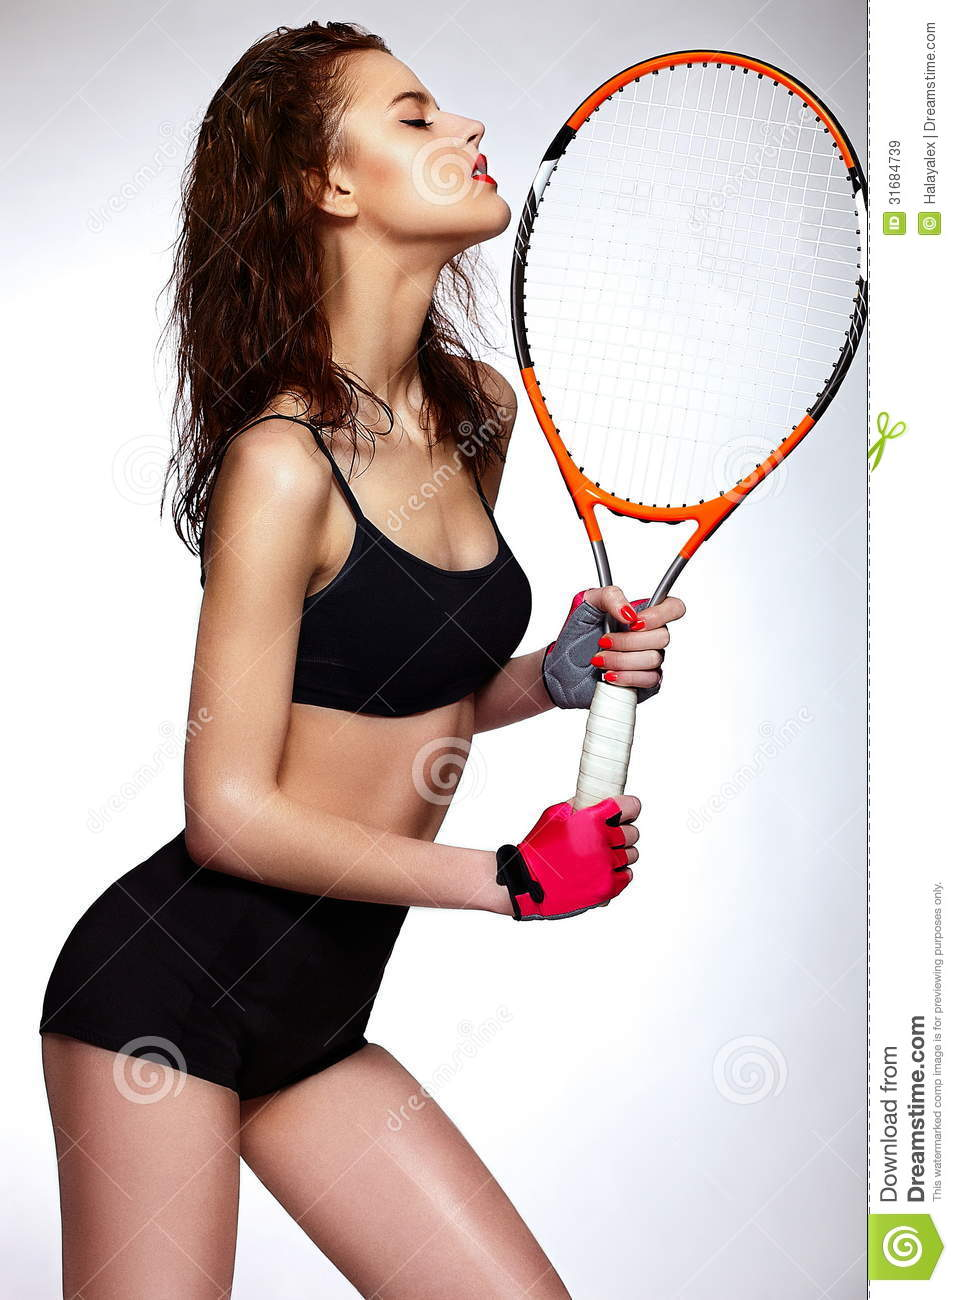 professional tennis player woman model with bright royalty tennis racket clipart png tennis racket clipart free